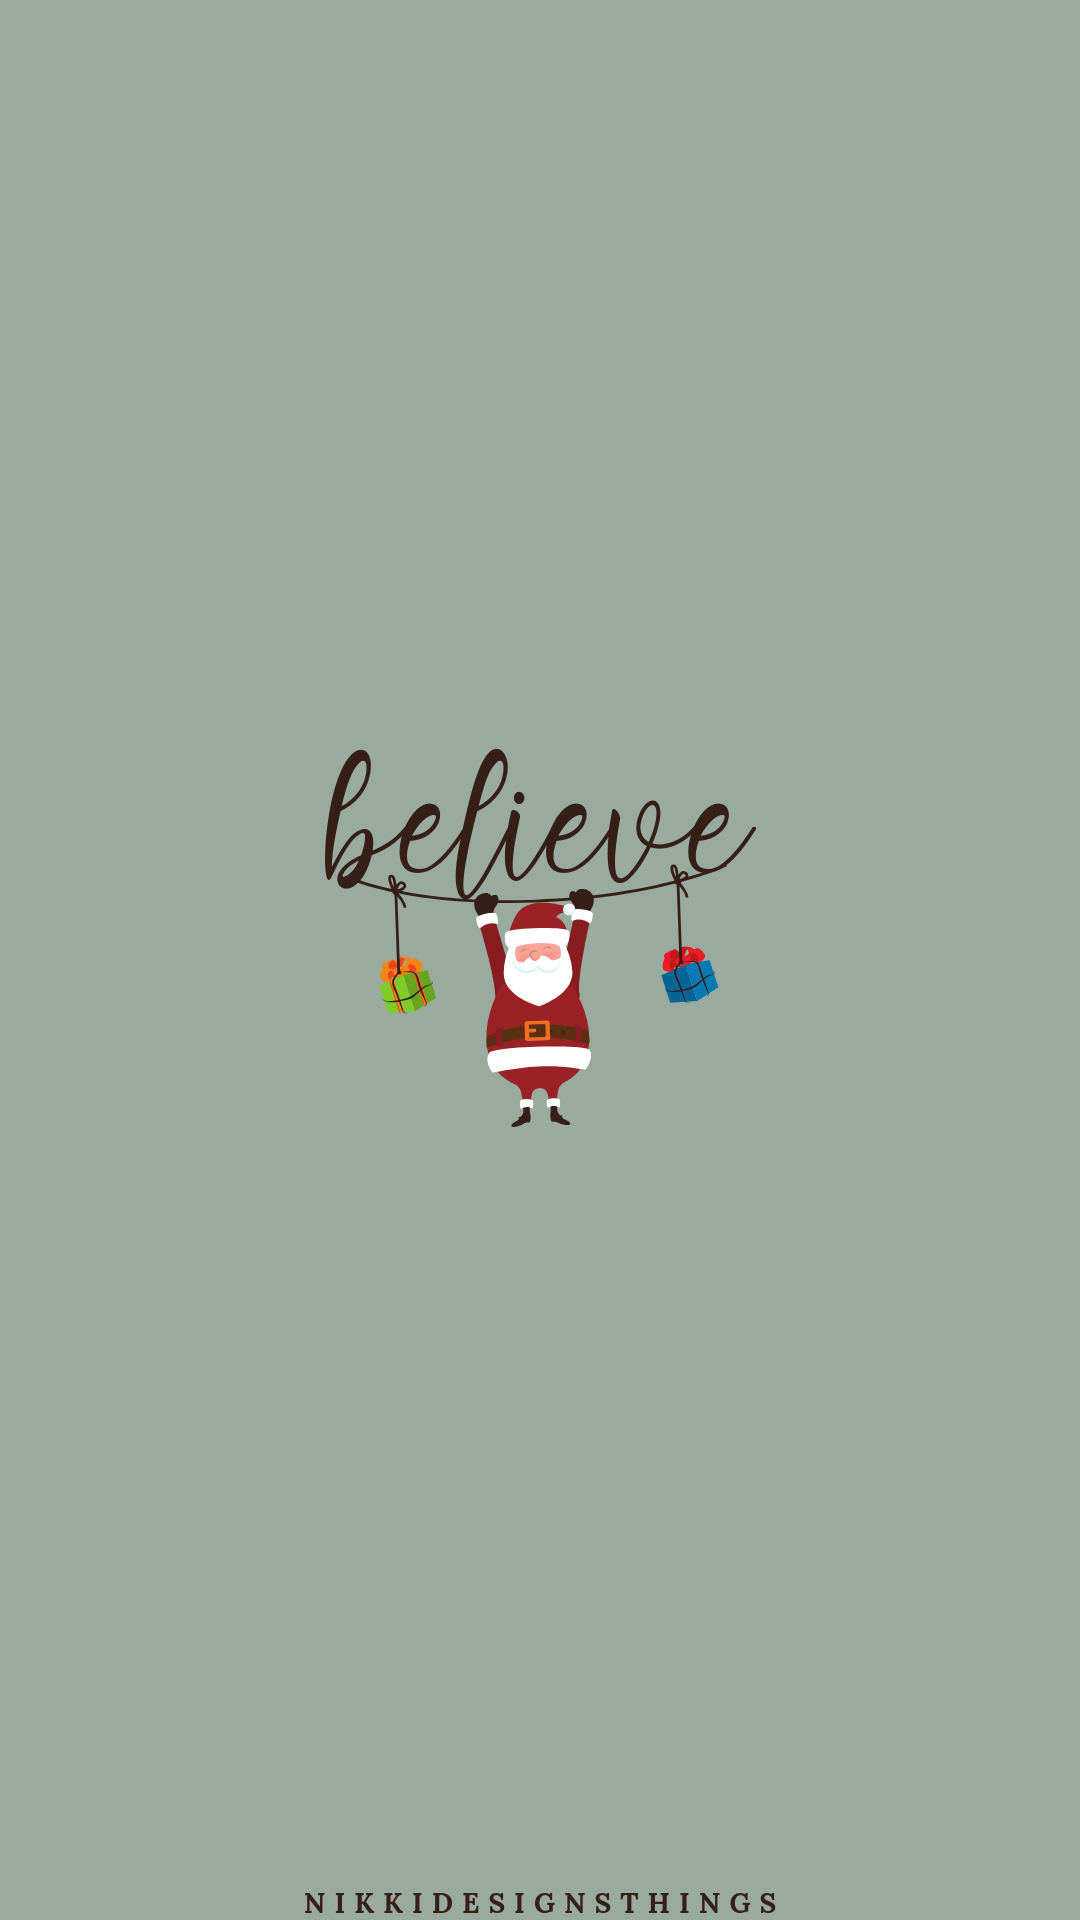 Christmas Phone Wallpaper Christmasbackgrounds Christmas Phone Wallpaper Cute Christmas Wallpaper Holiday Wallpaper